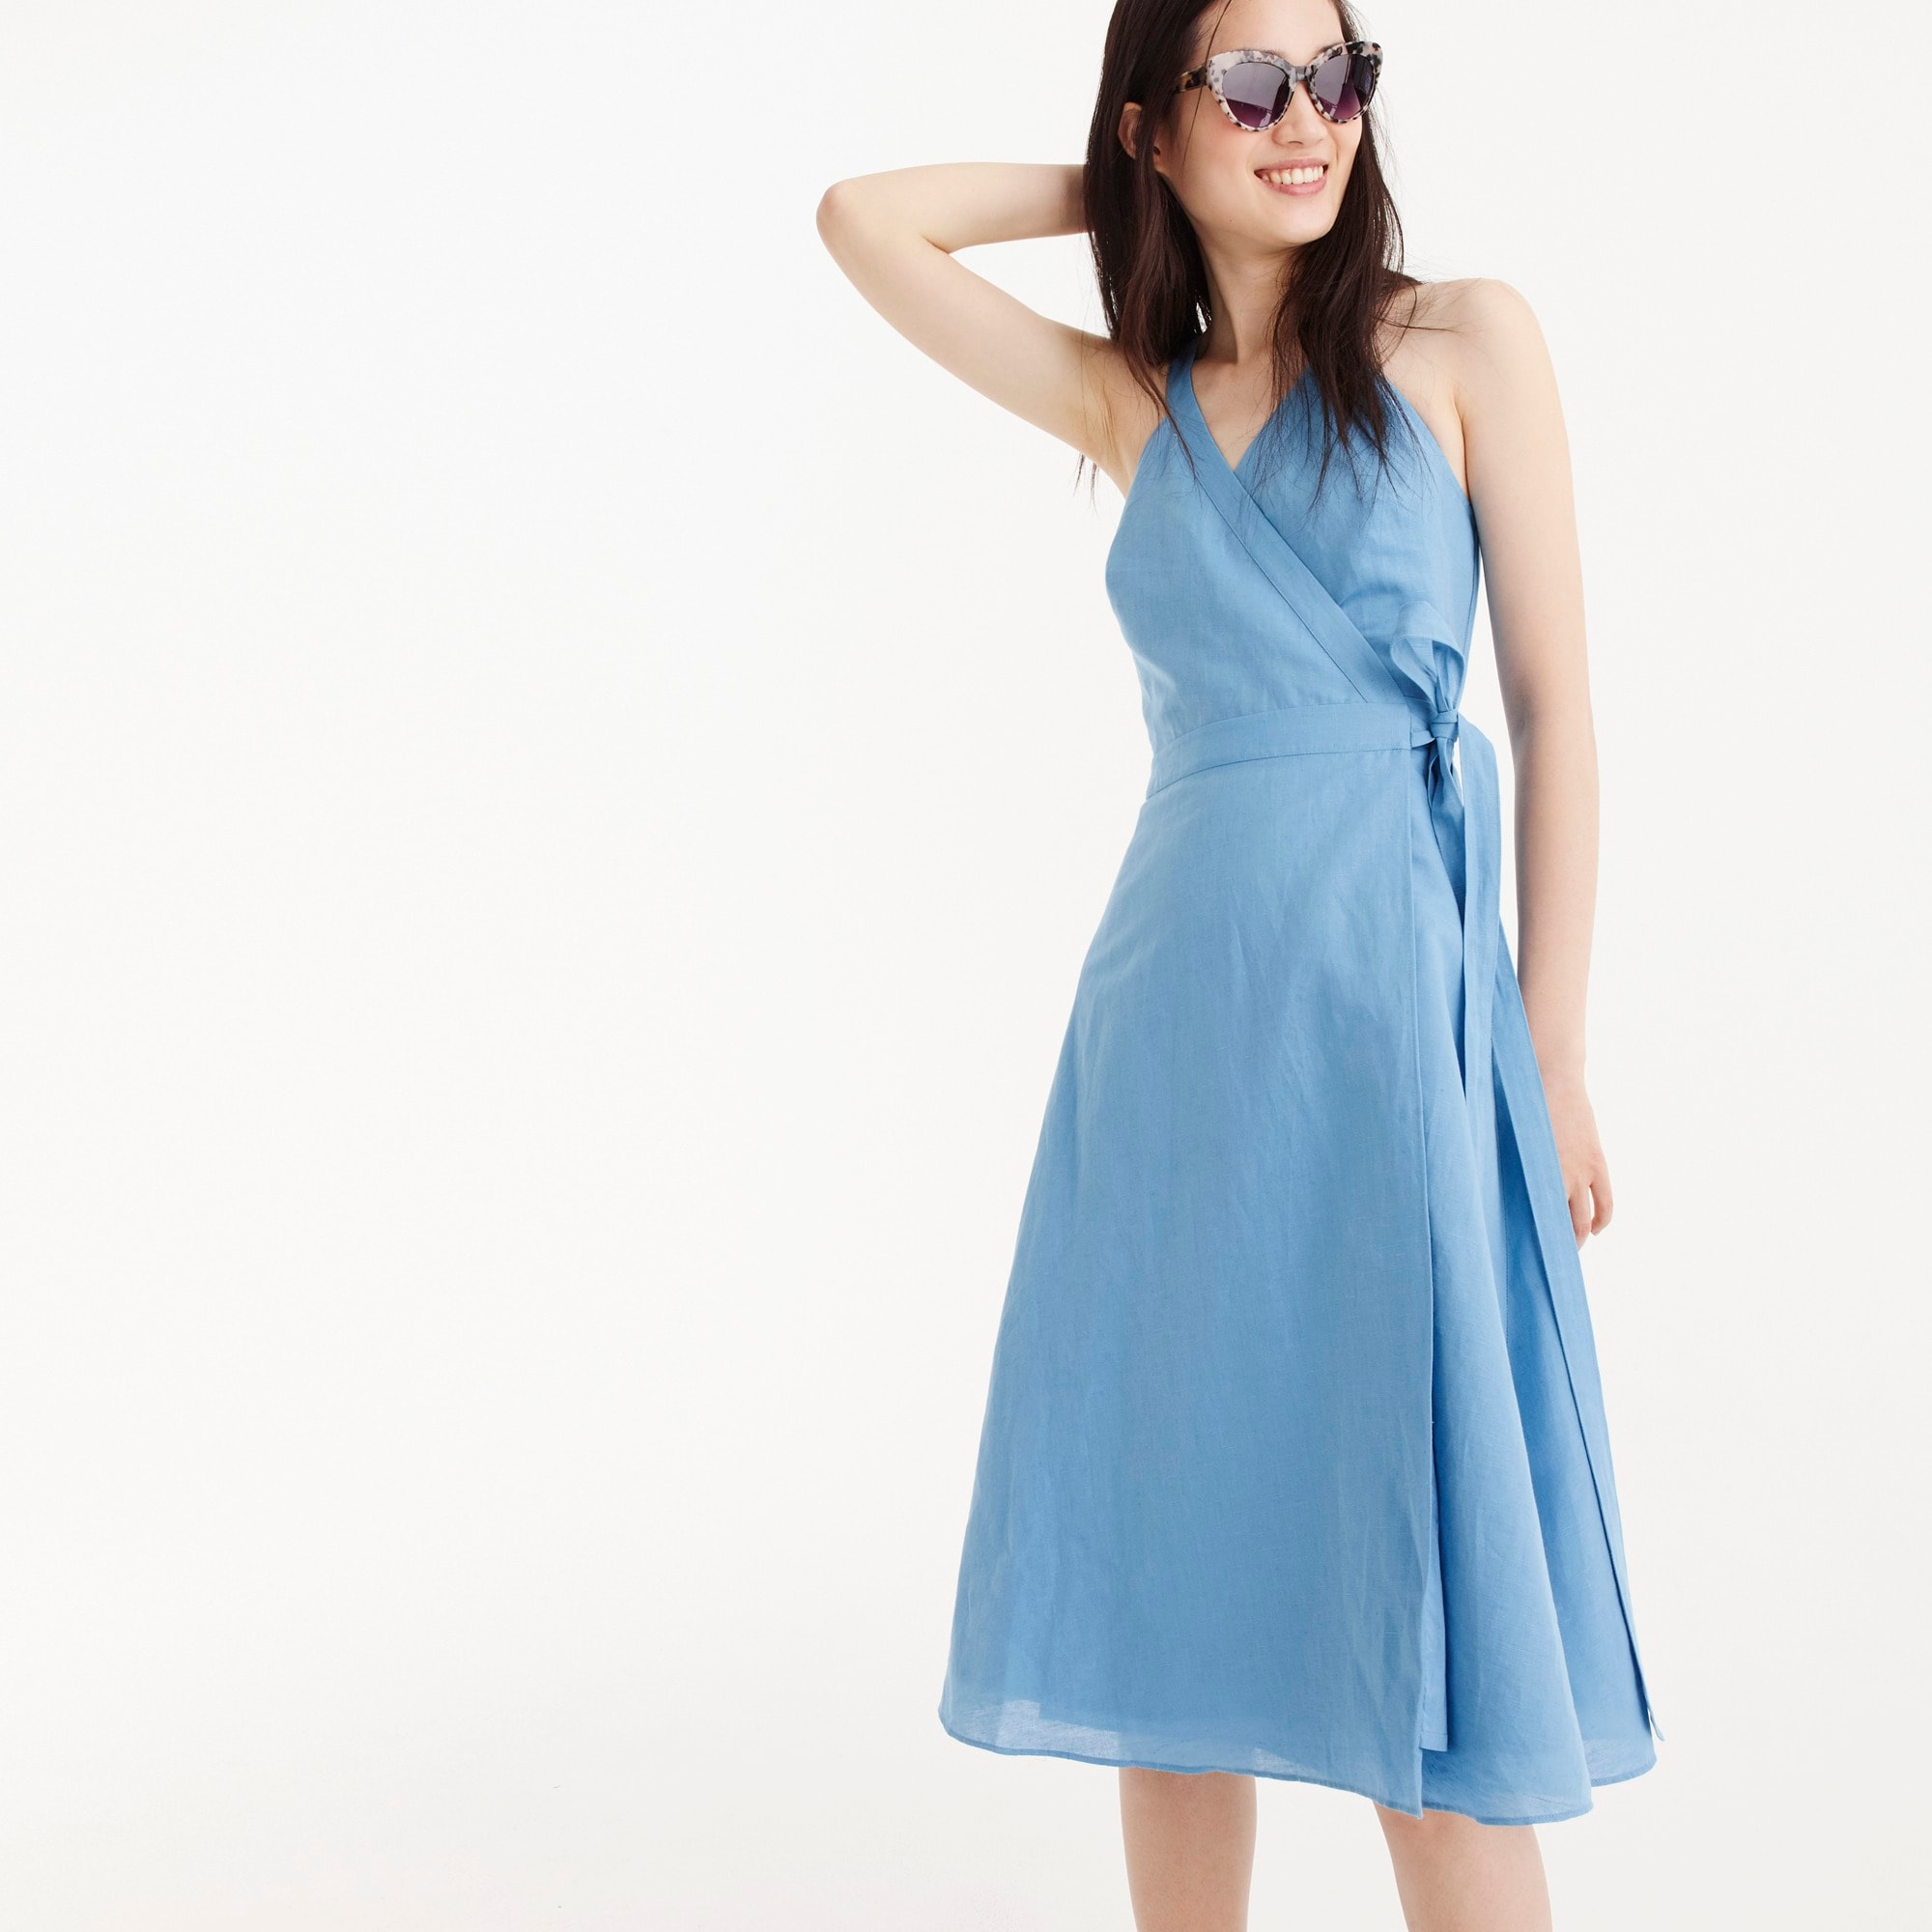 Linen wrap dress women dresses c